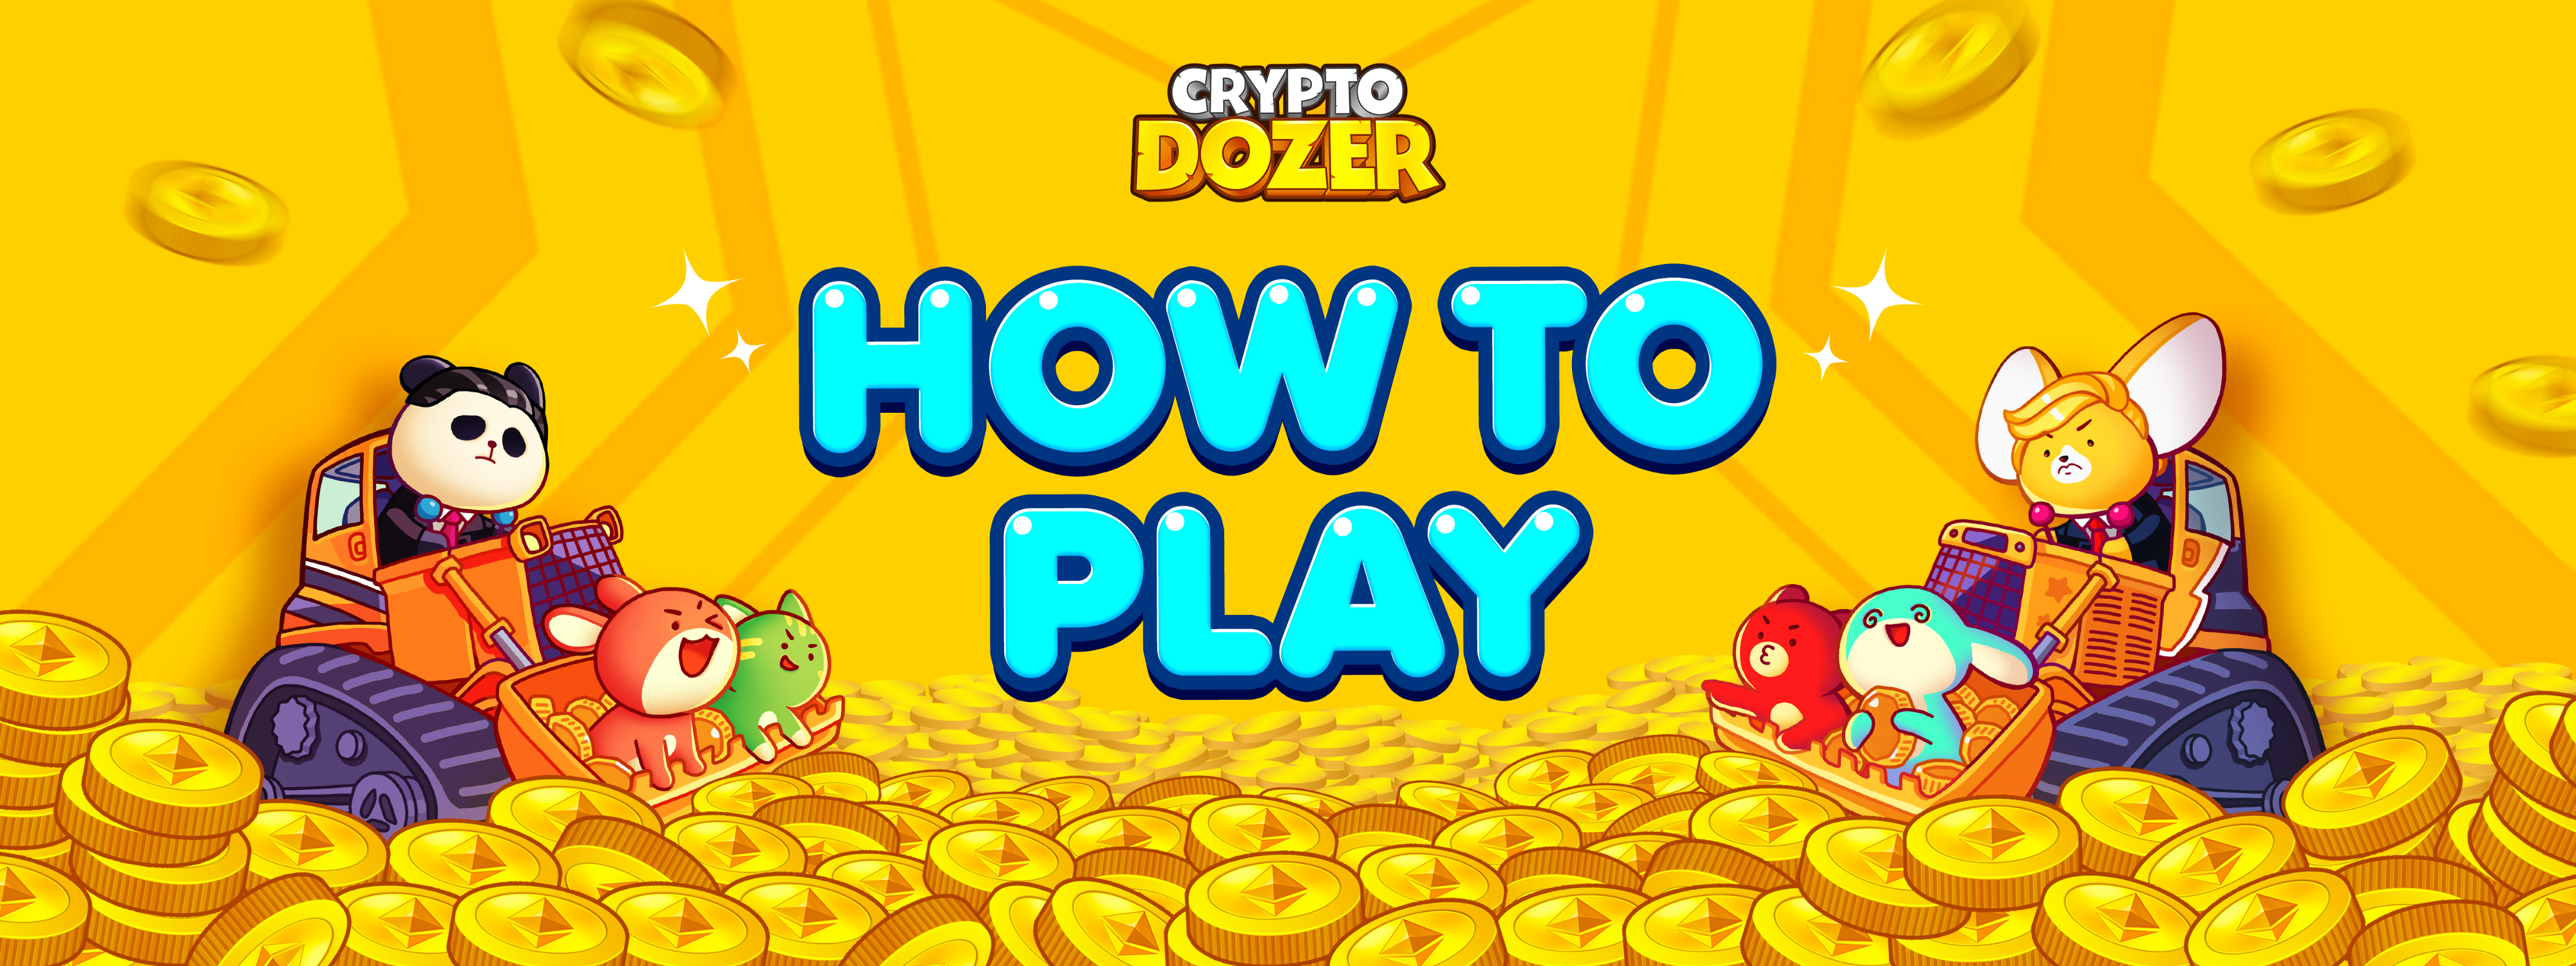 CryptoDozer 101 : How to Play & Earn ETH - PlayDapp - Medium